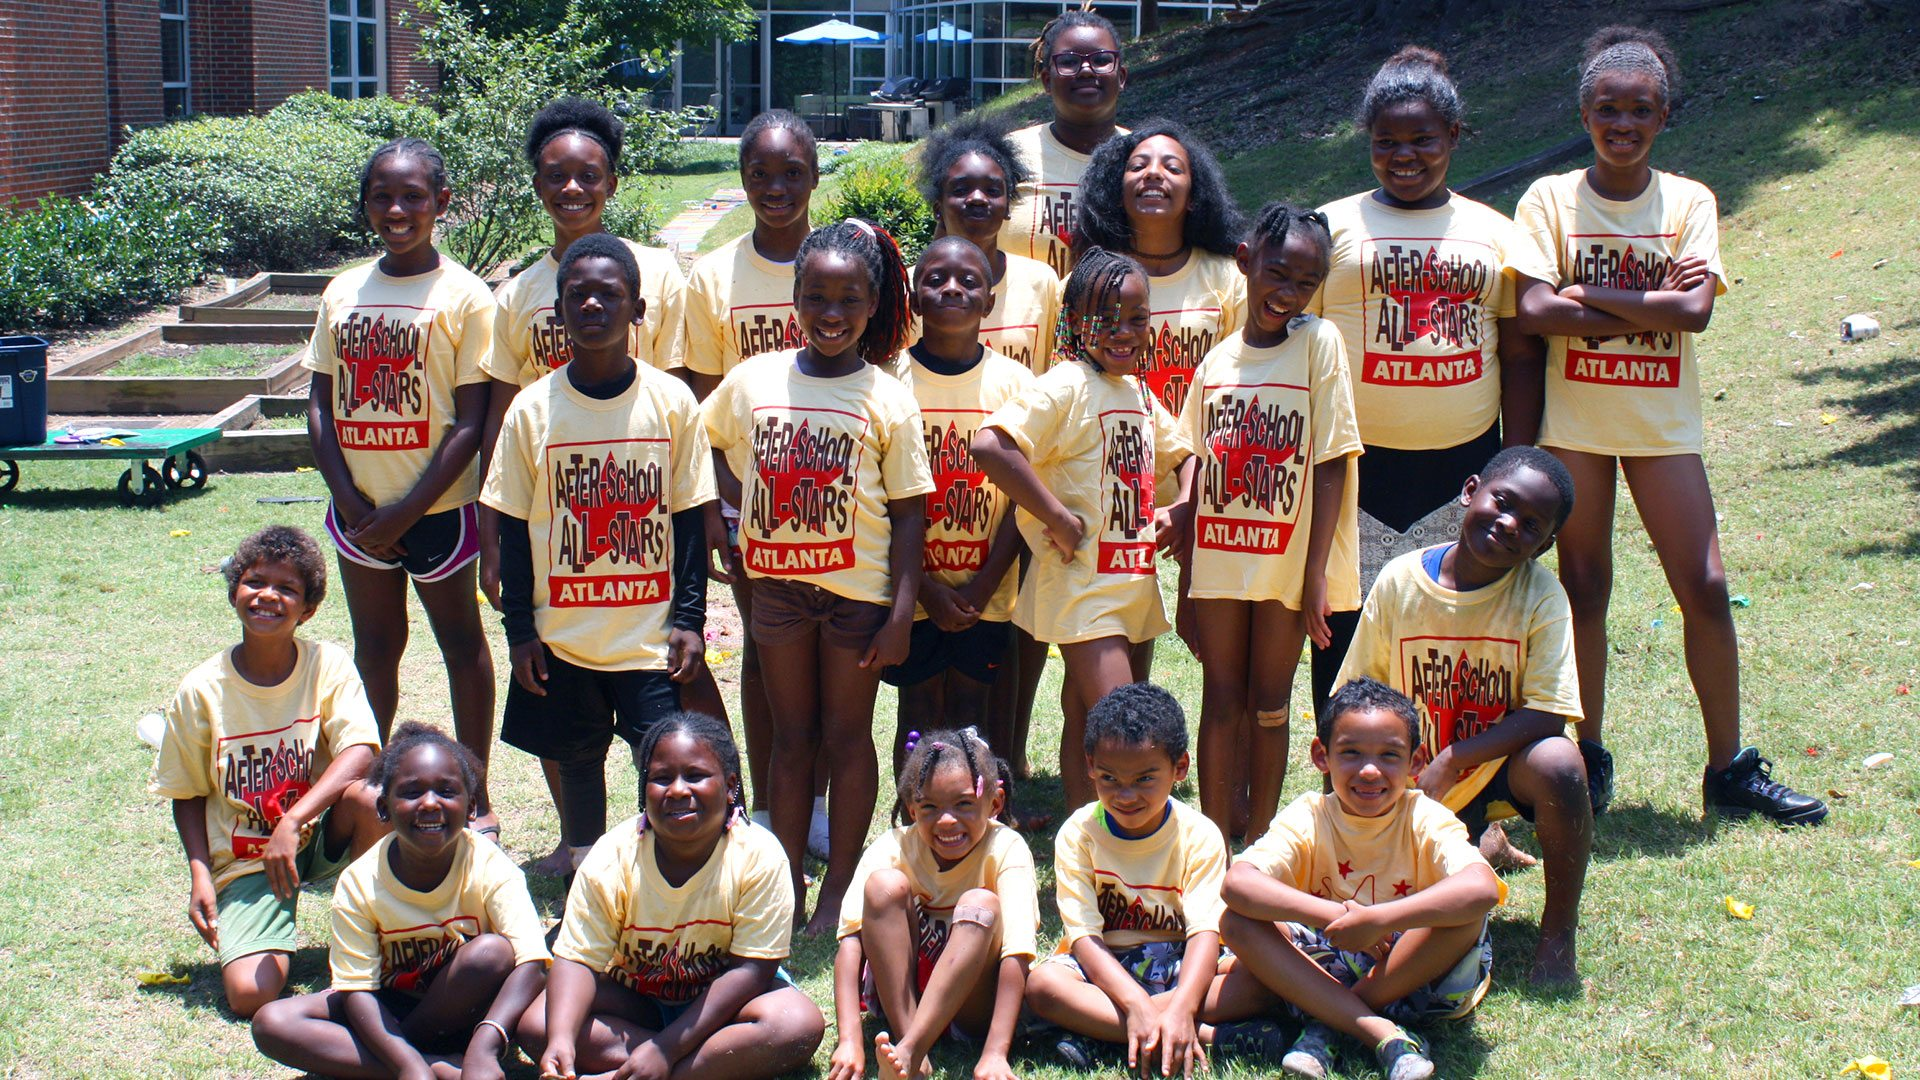 After-School All-Stars pose for a group photo in their summer ASAS t-shirts